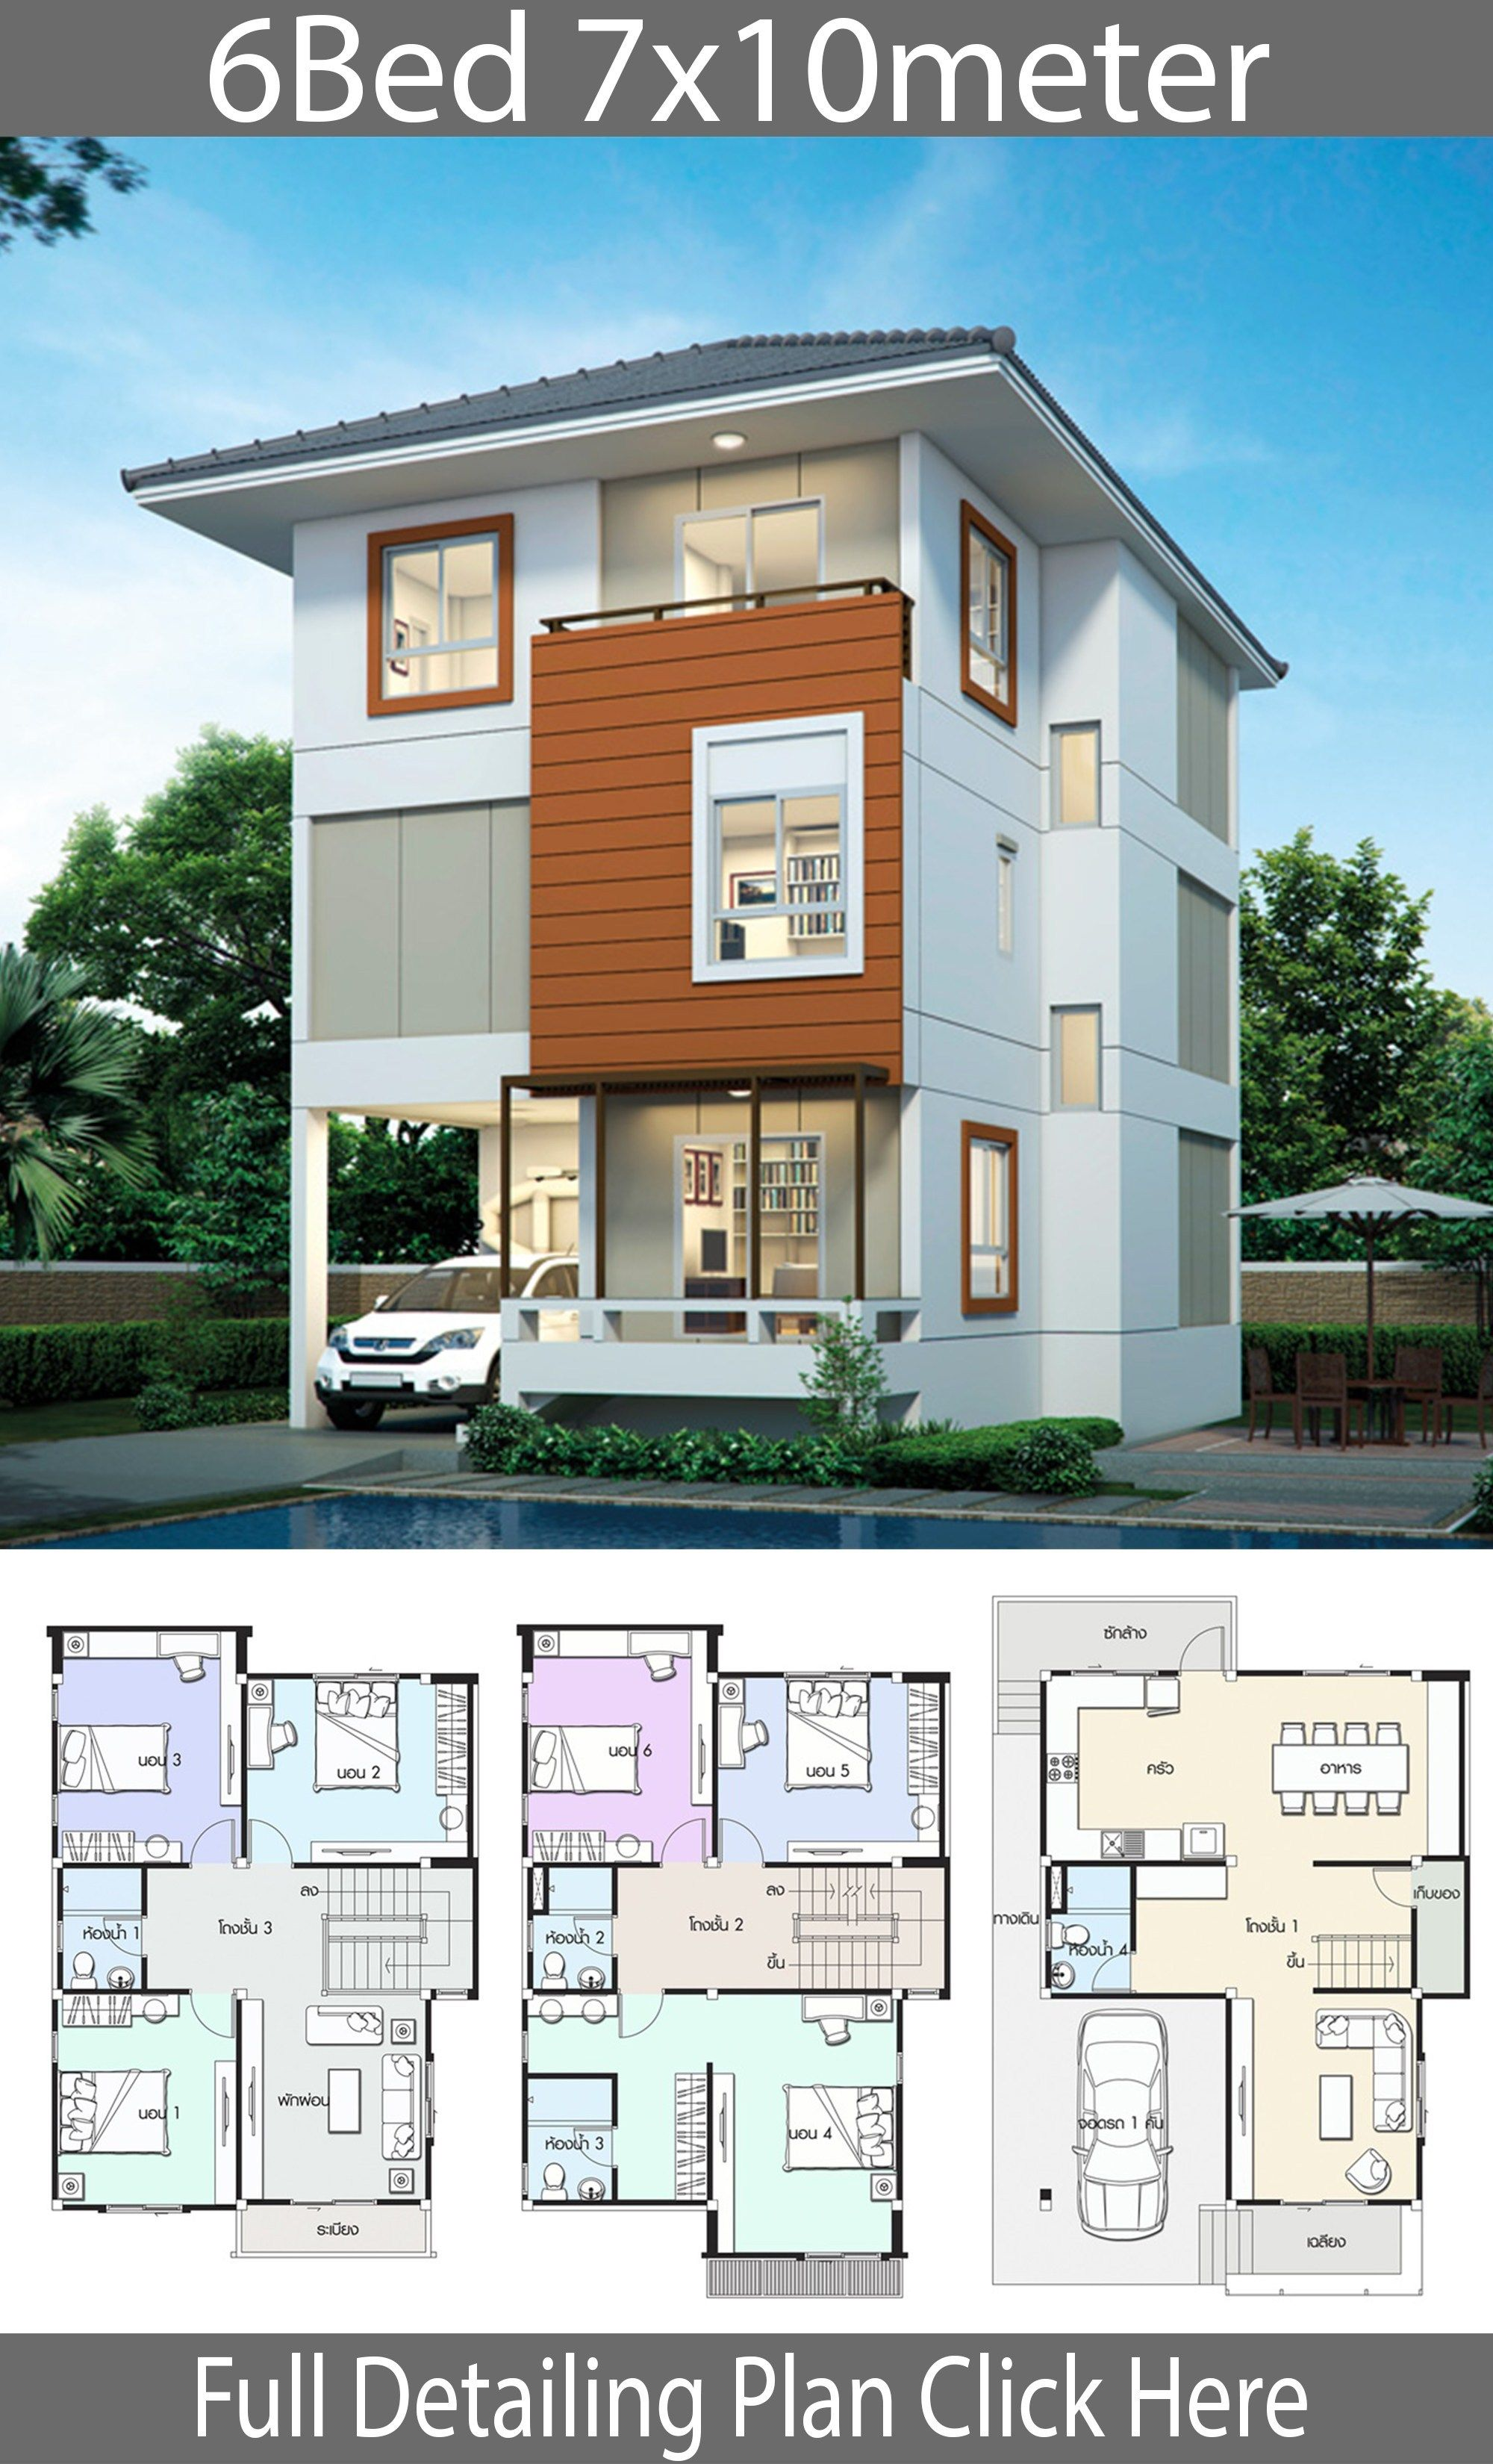 House Design Plan 7x10m With 6 Bedrooms Home Design With Plan Town House Floor Plan Duplex House Design Home Design Plans